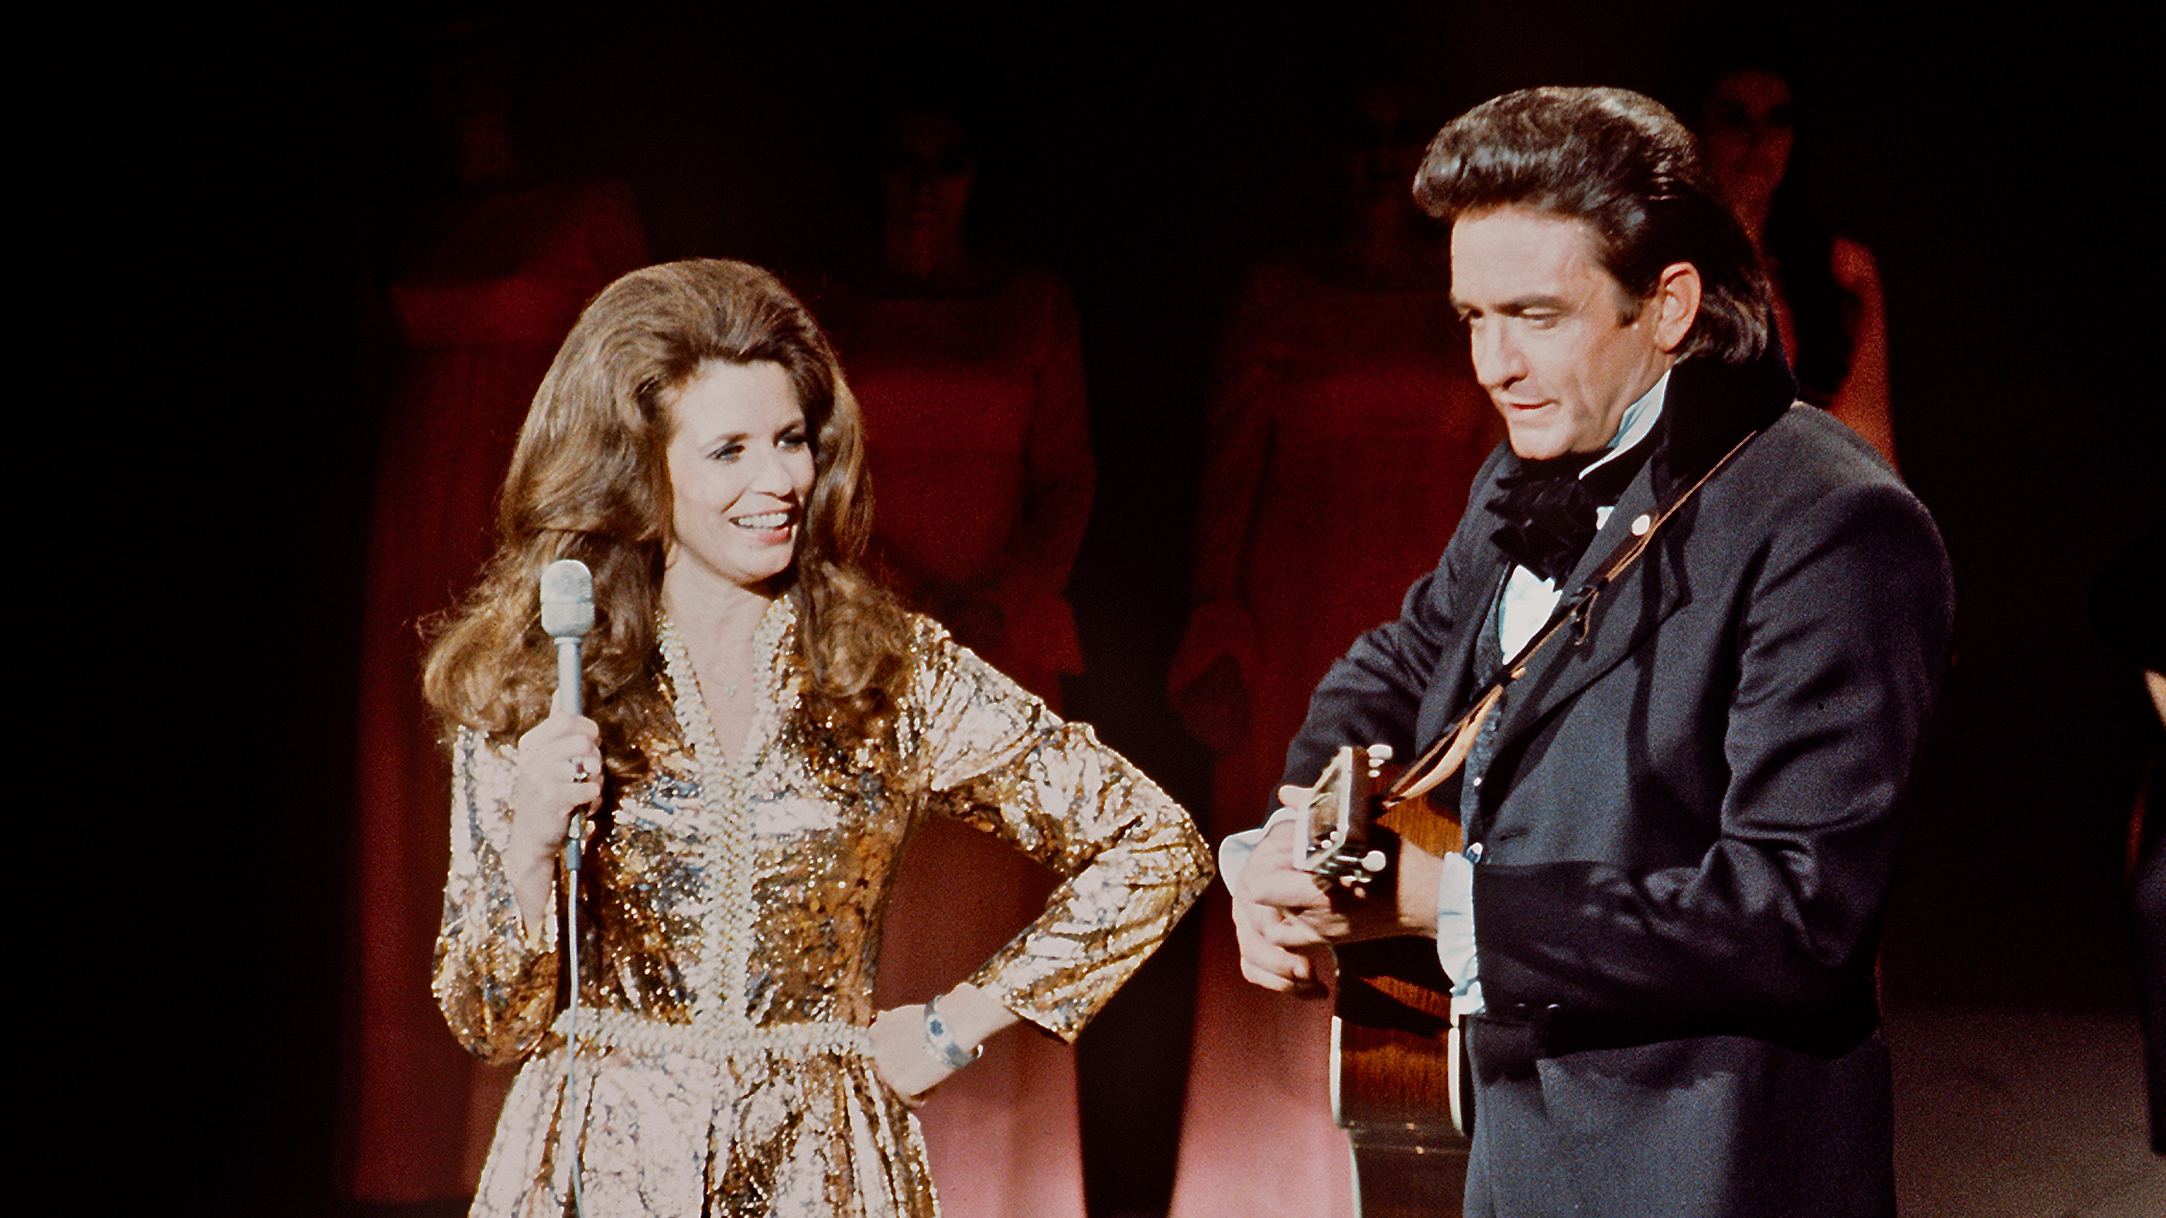 johnny_cash_show_question_9_16-9_-_1